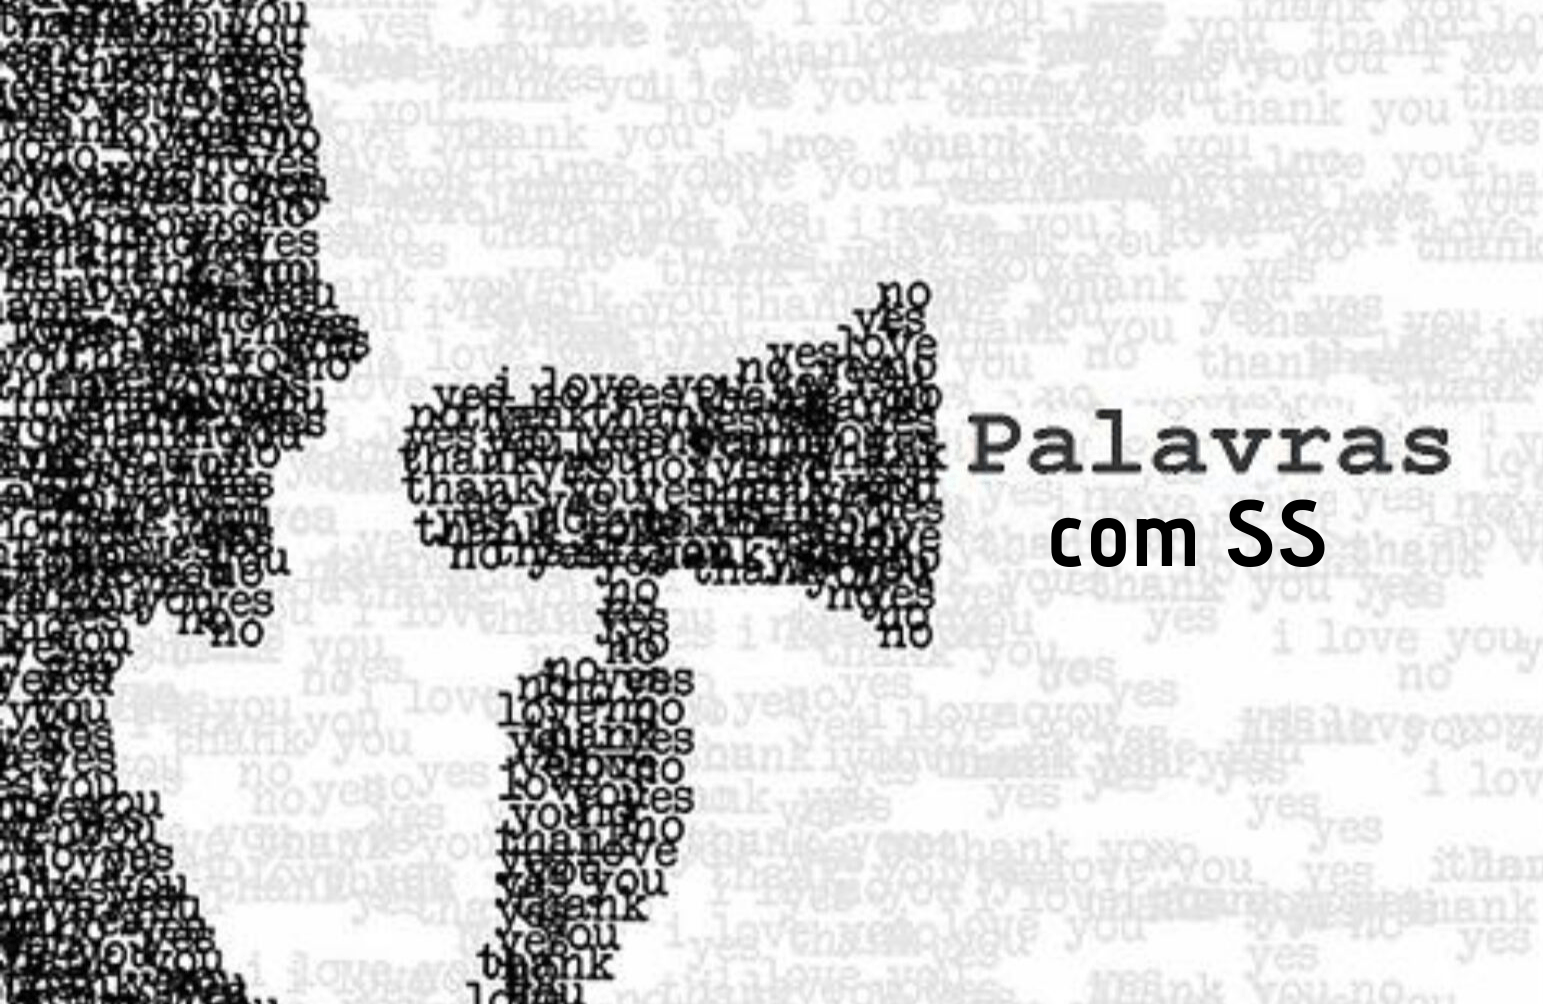 You are currently viewing ▷ 800 Palavras Com SS